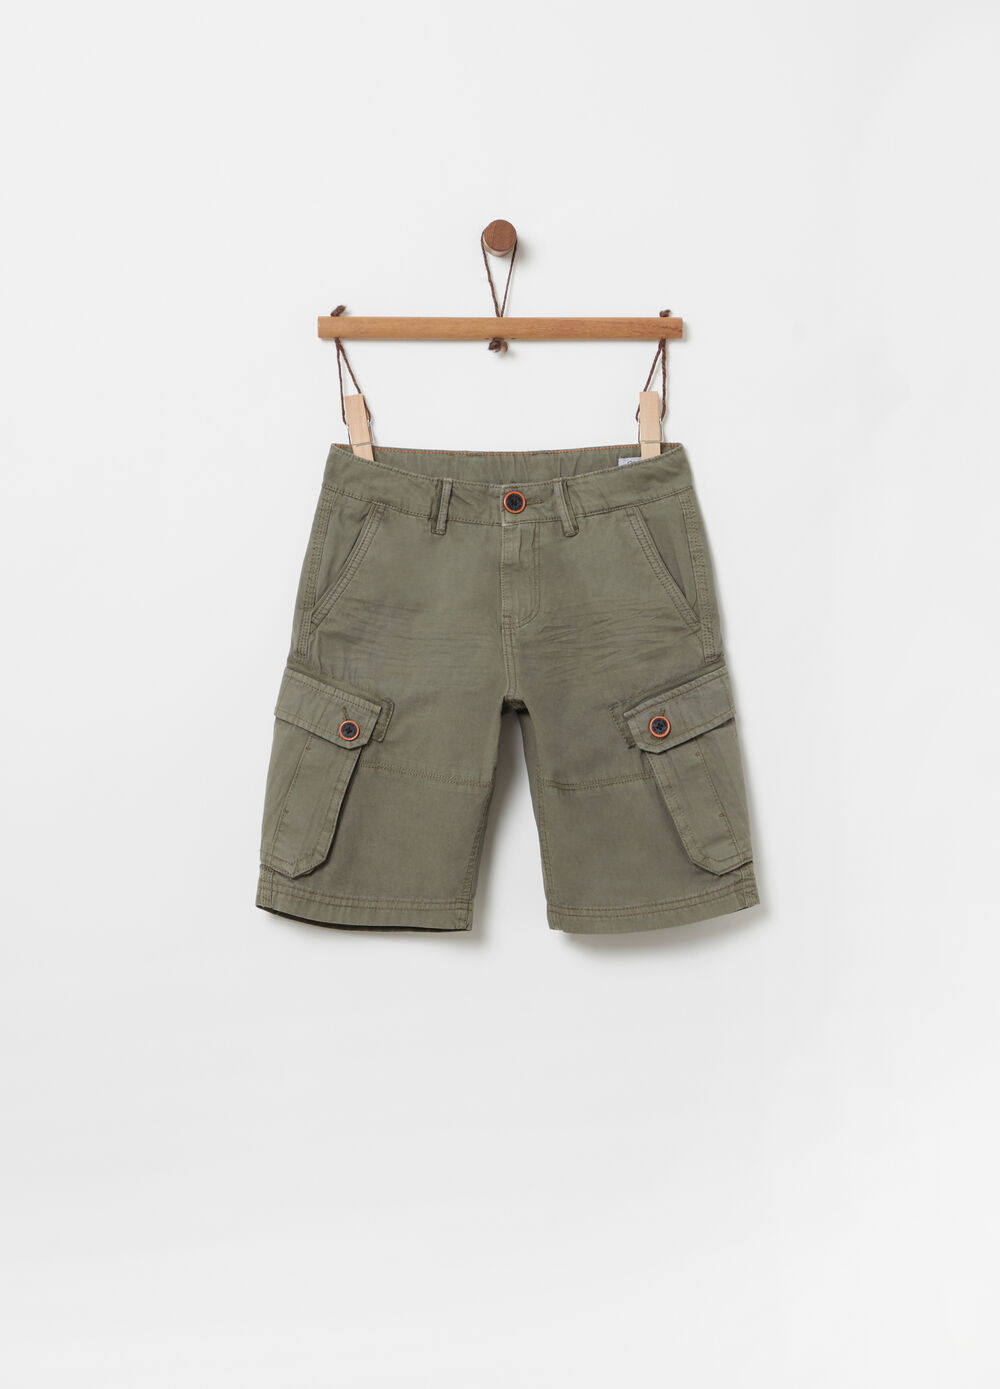 Cargo shorts with large pocket and button